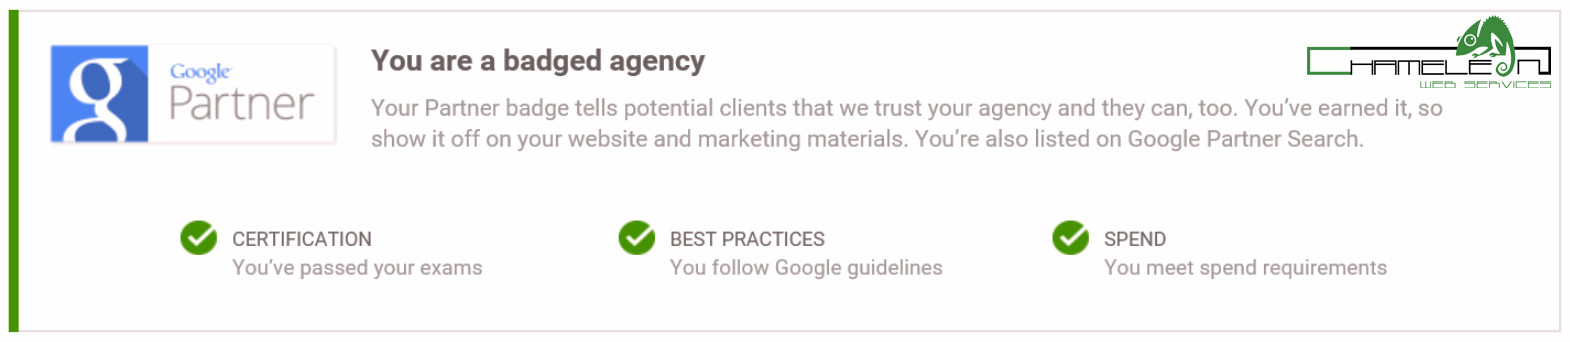 Google Partner Badged Agency